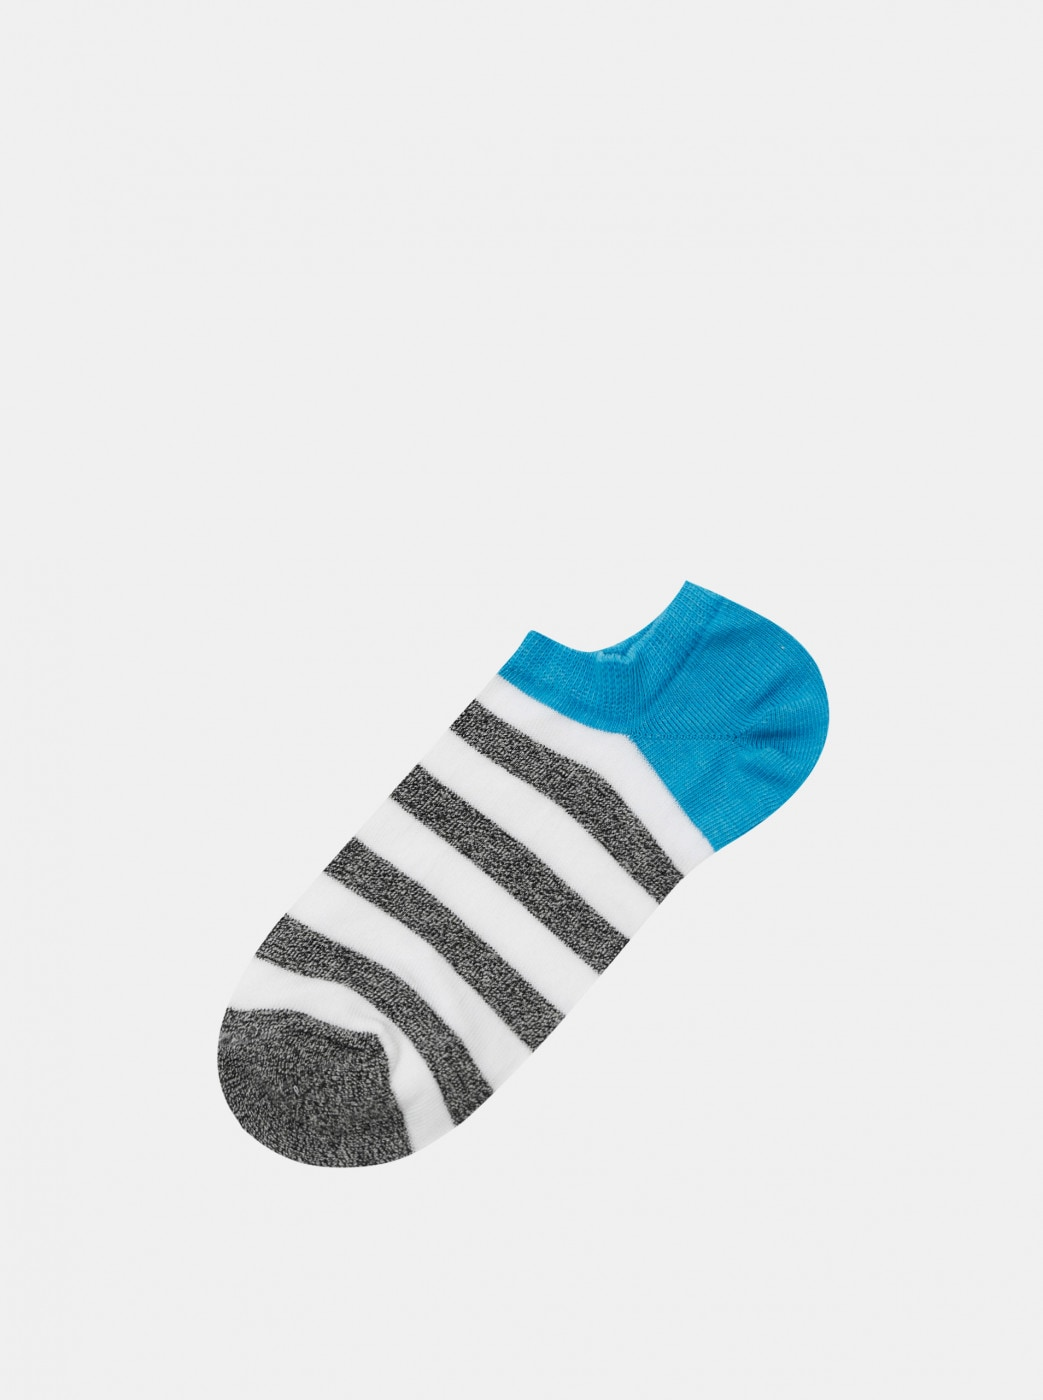 Marie Claire Blue-White Striped Socks